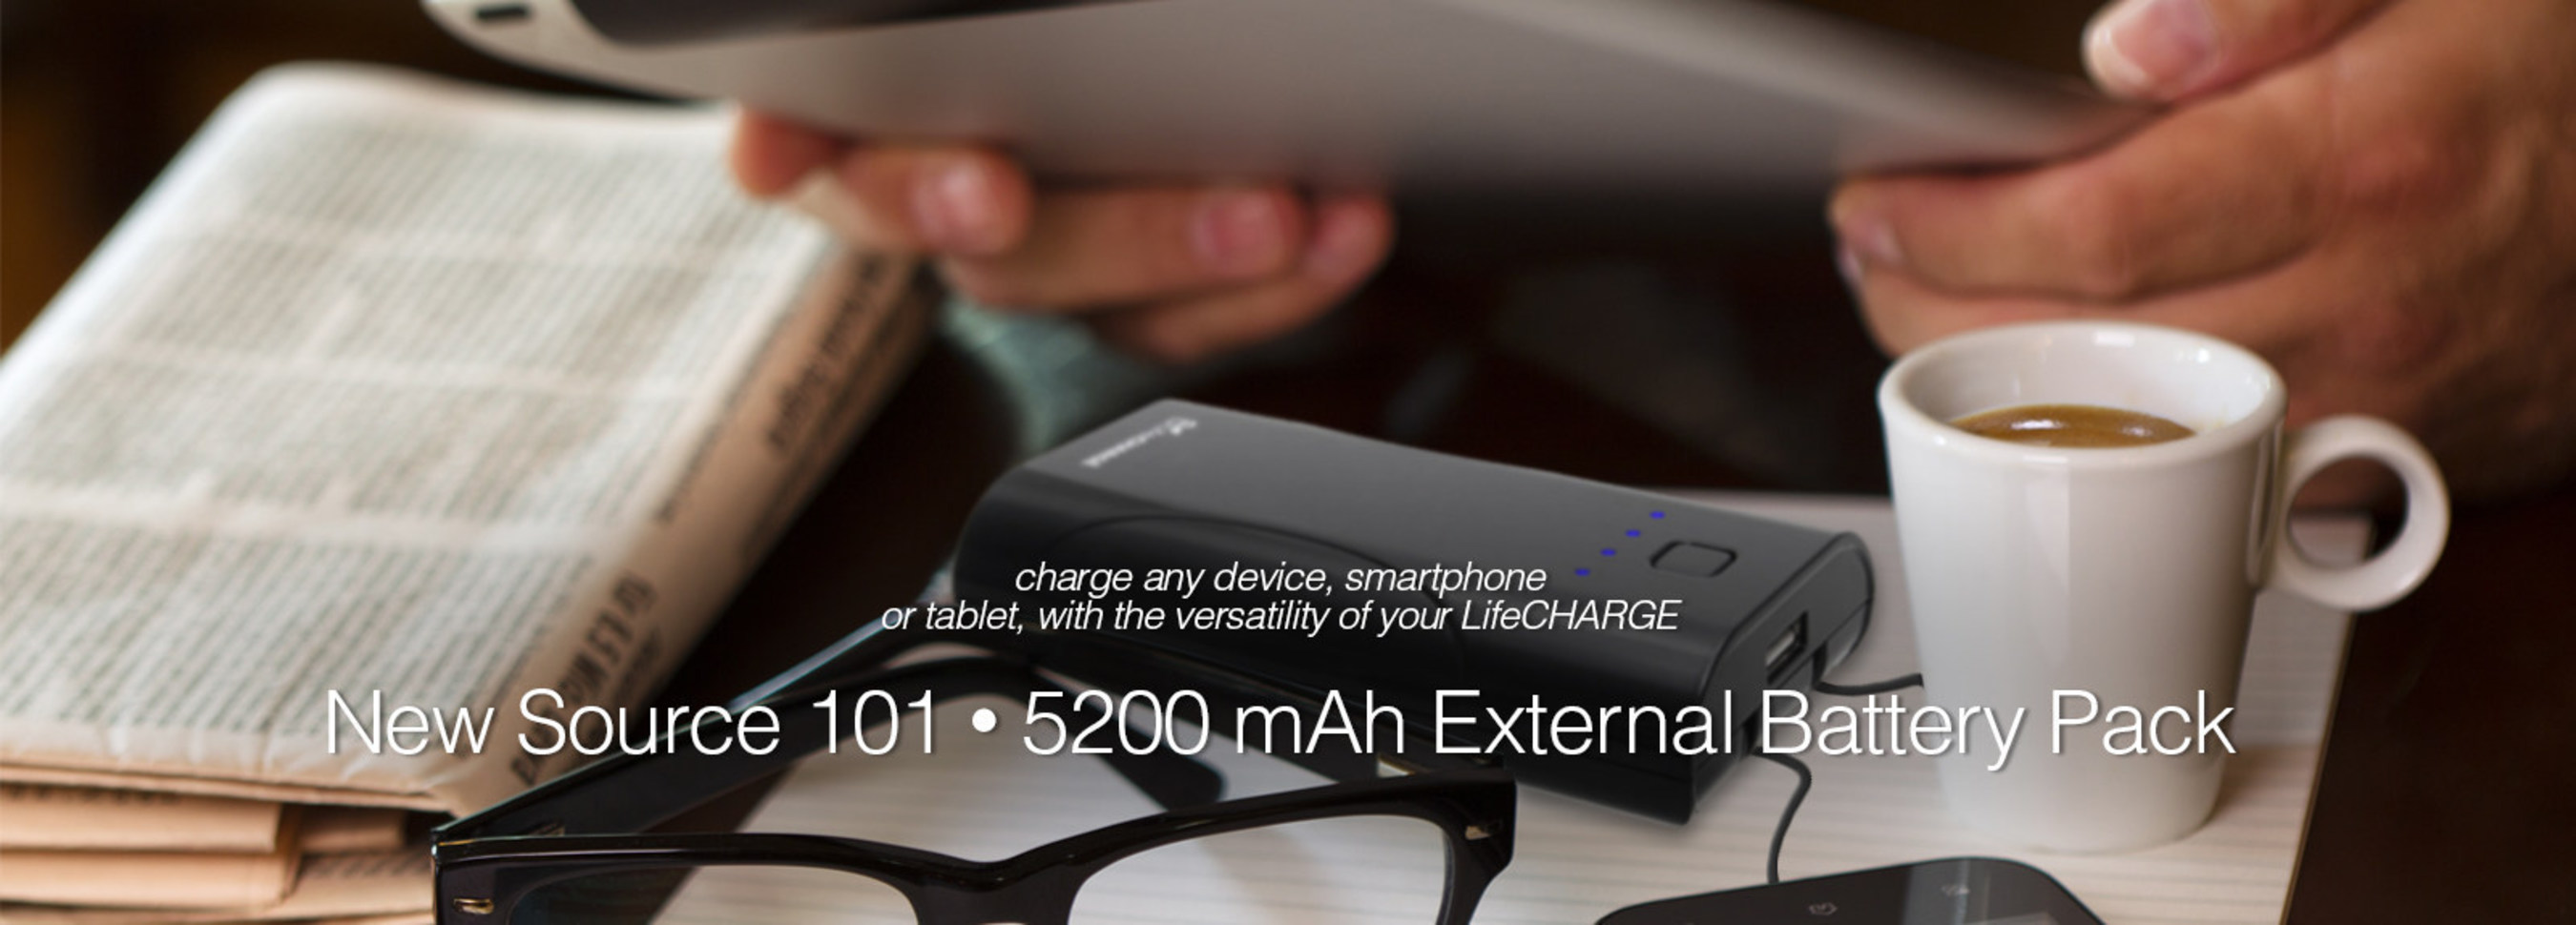 LifeCHARGE Announces Indiegogo Crowdfunding Campaign for Source 101 Rechargeable External Battery Pack